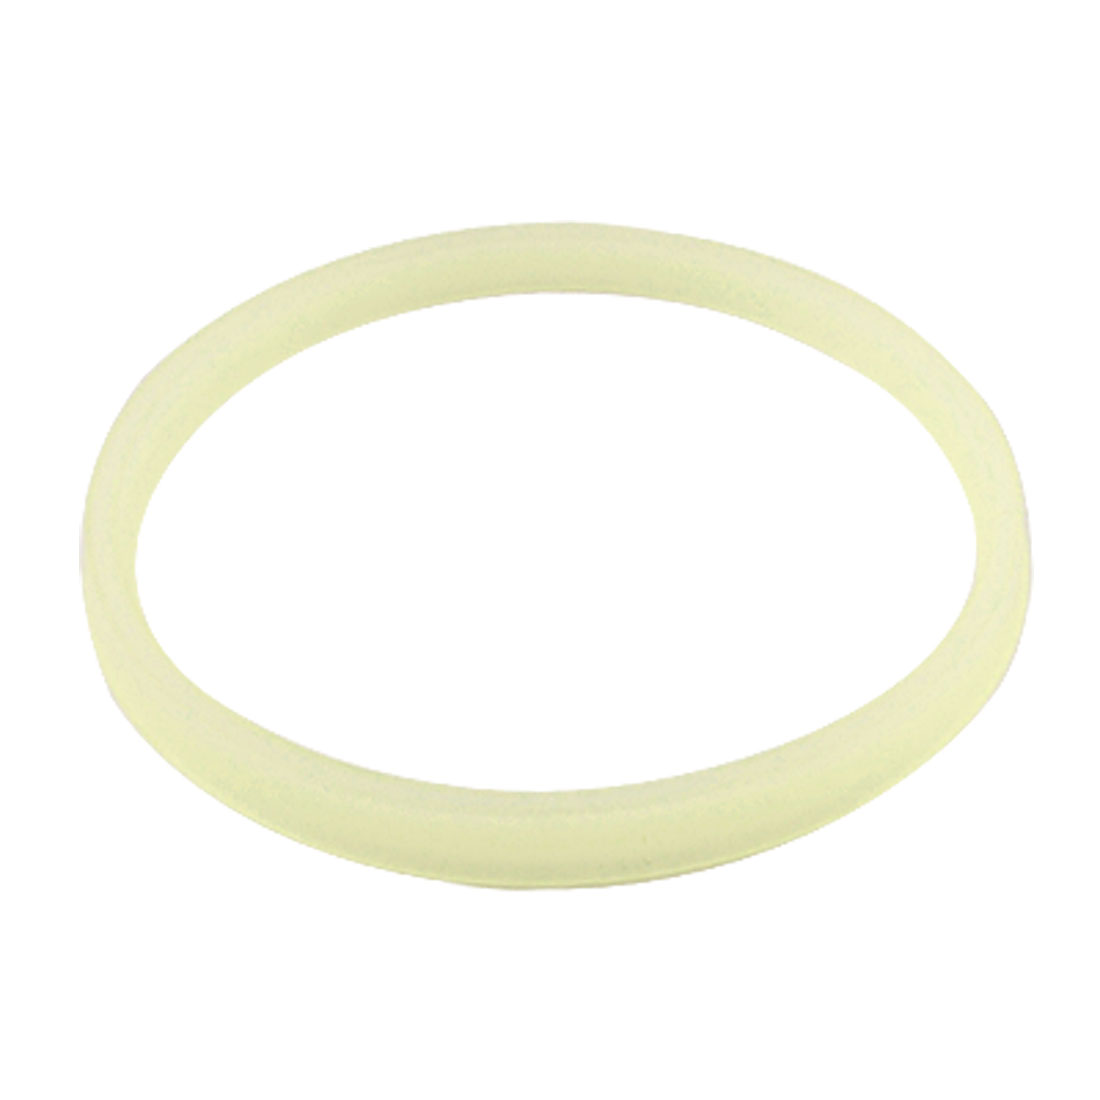 145mmx135mmx12mm Beige Polyurethane Pressure Oil Seal for Auto Car